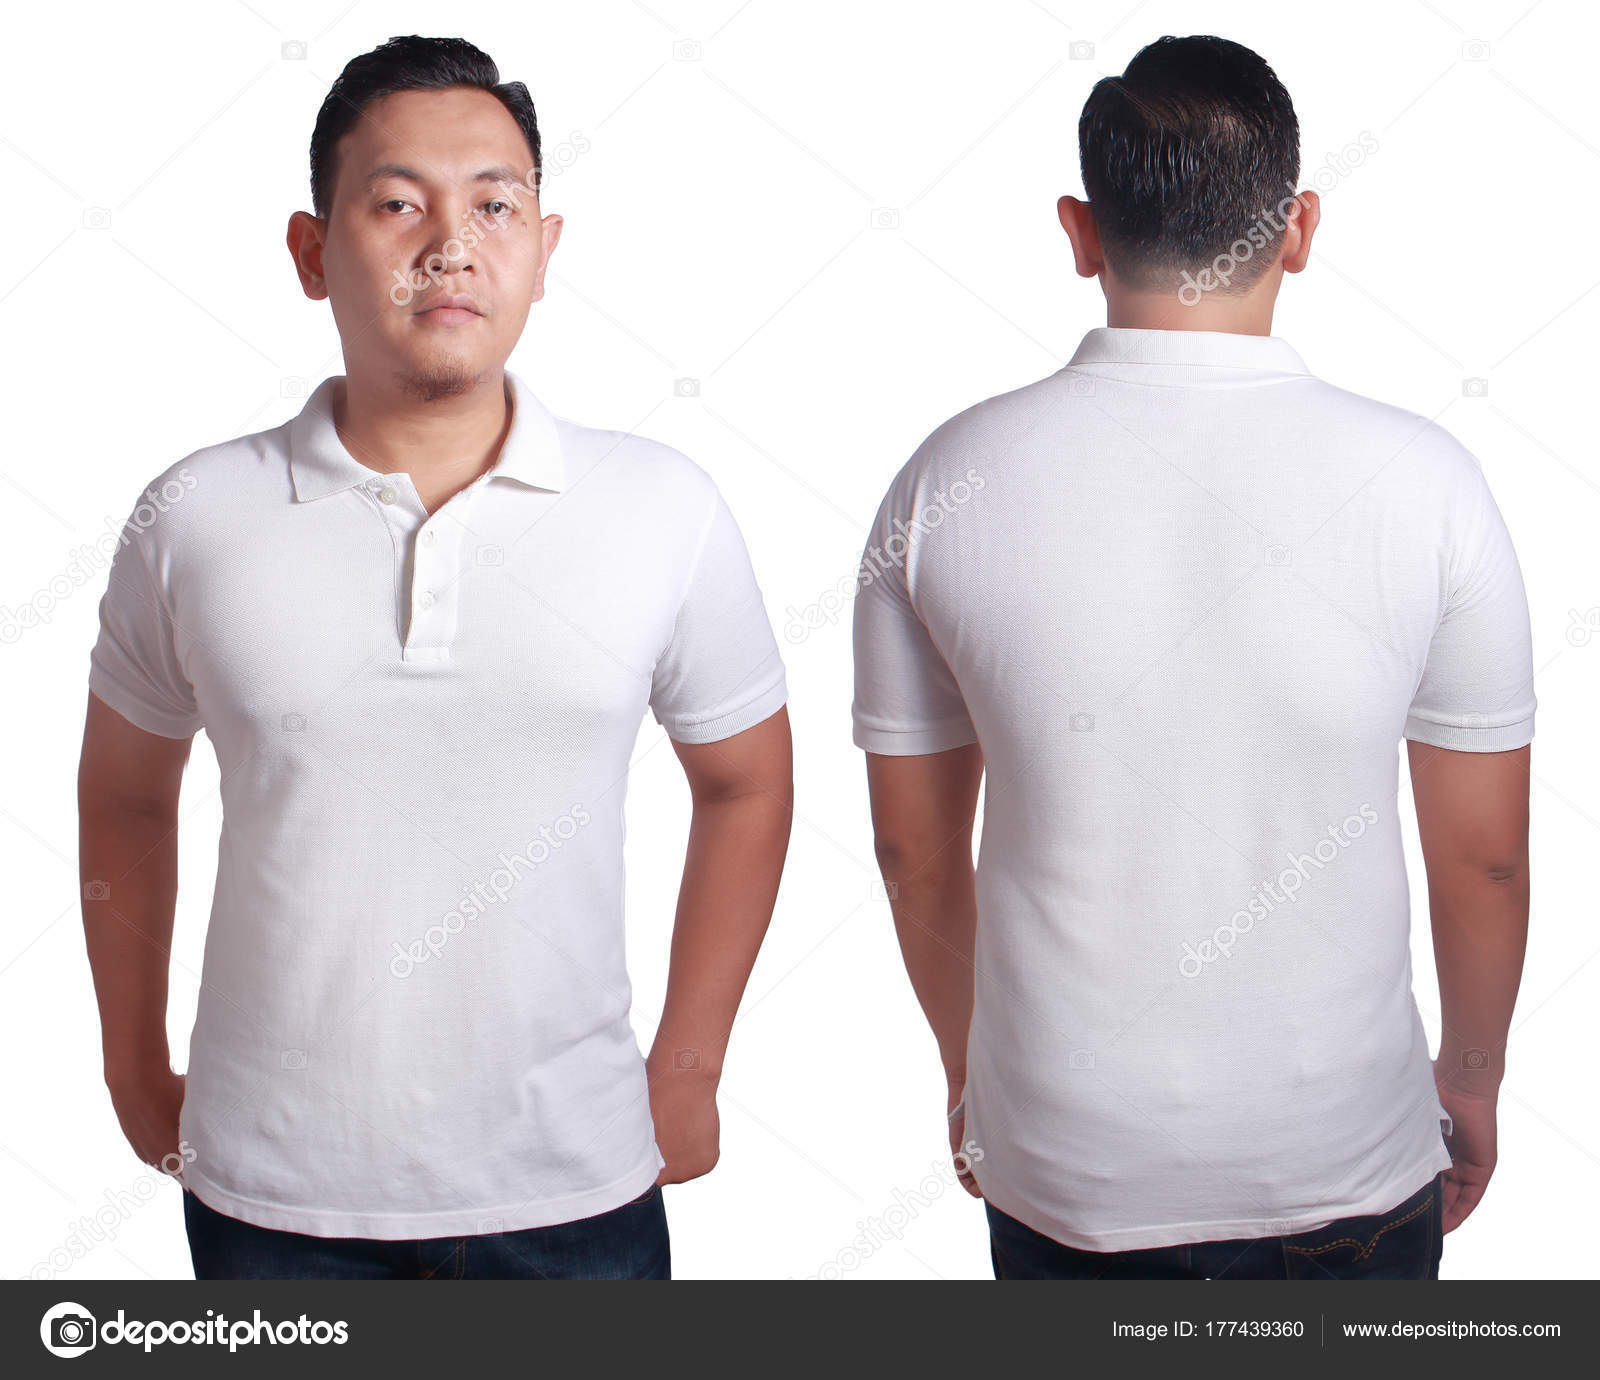 04c3032ce Blank polo shirt mock up, front, and back view, isolated on white. Asian  male model wear plain white tshirt mockup. Clothes uniform design  presentation for ...